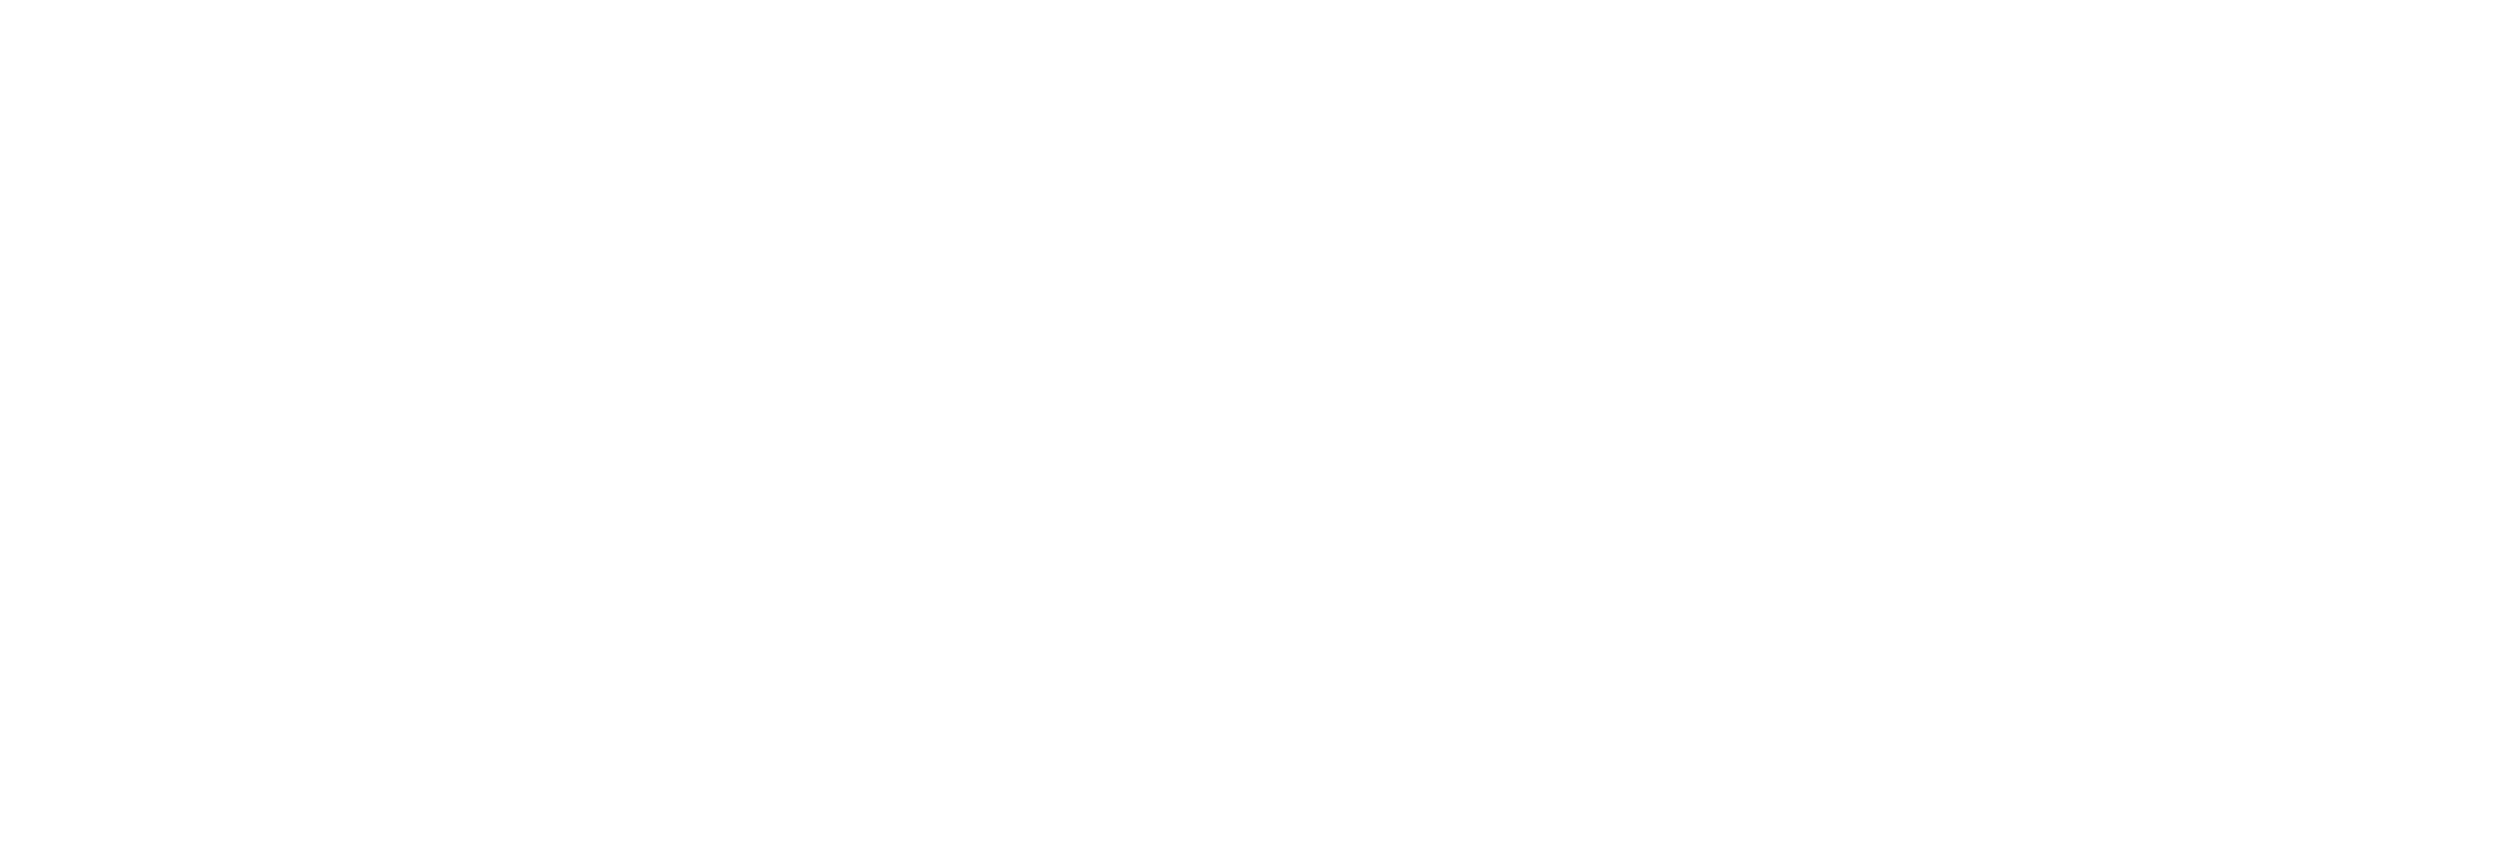 18th Amendment Spirits Co.